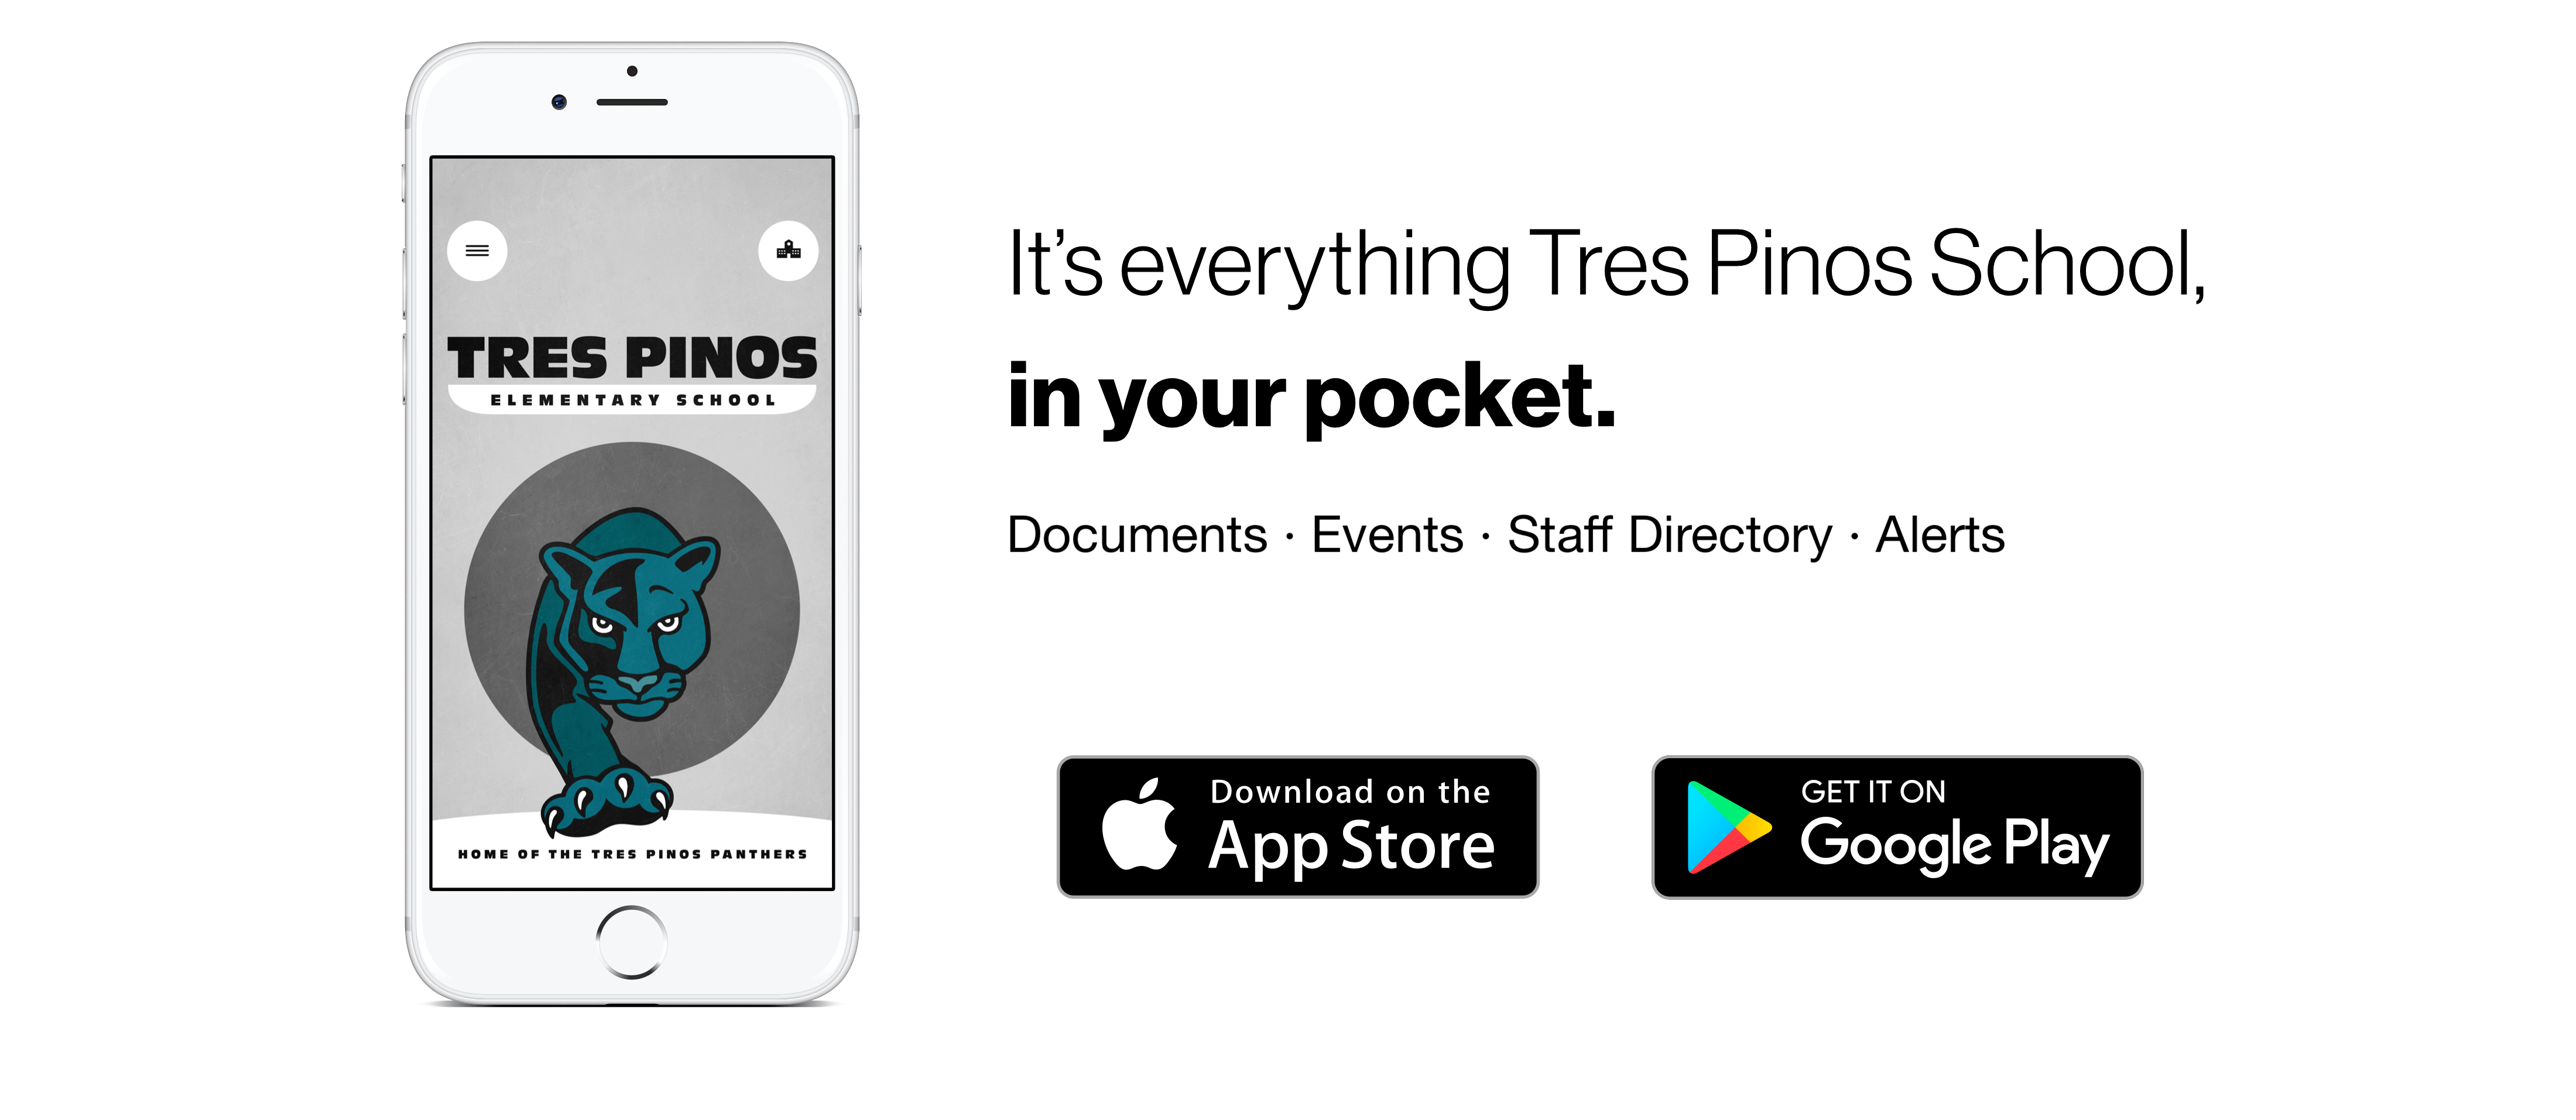 Download the new app! It's everything Tres Pinos! in your pocket!